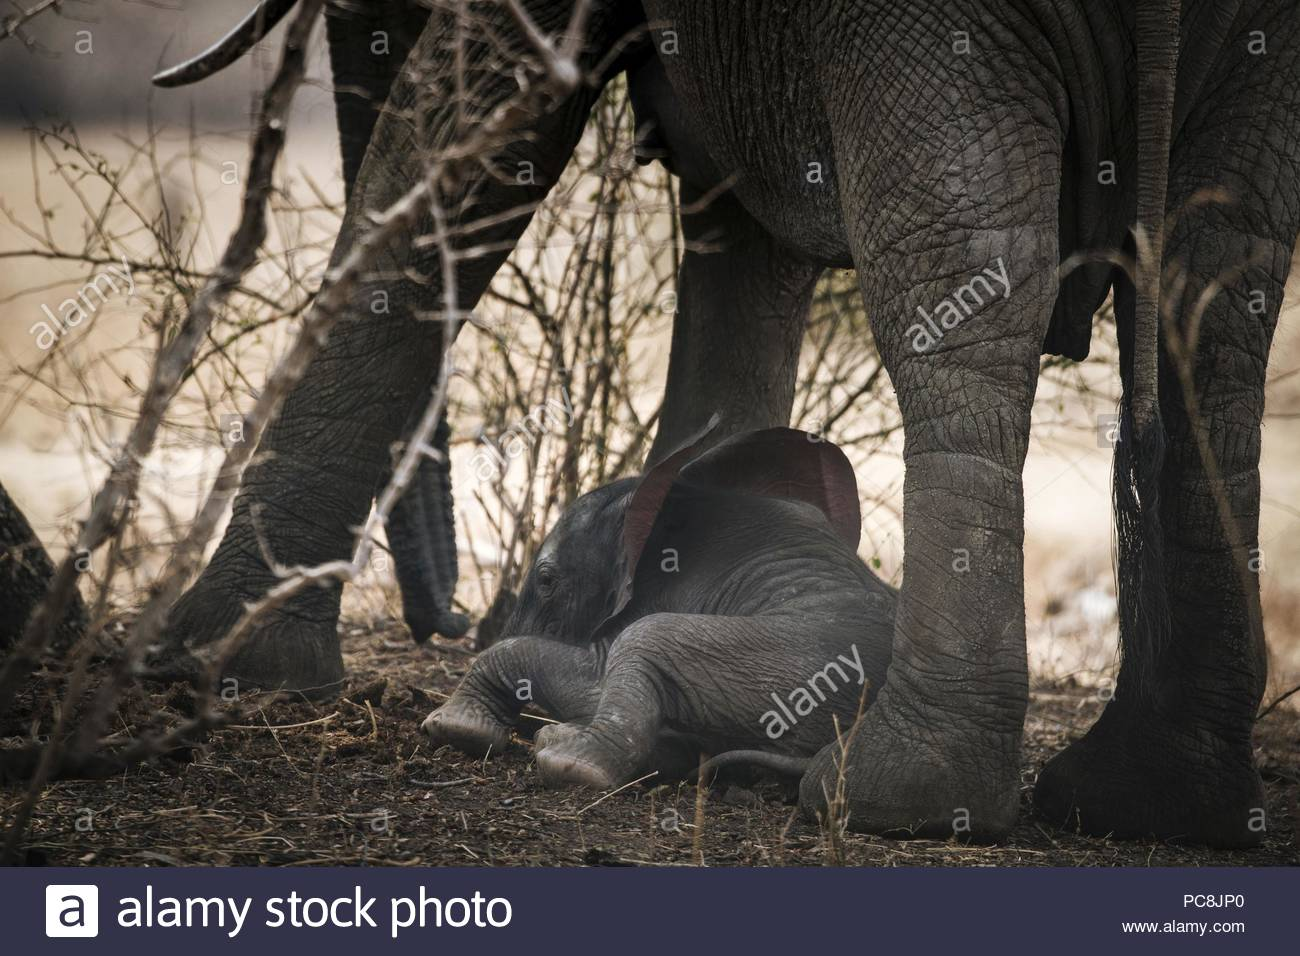 An African elephant calf nursing from its mother, Loxodonta africana. - Stock Image